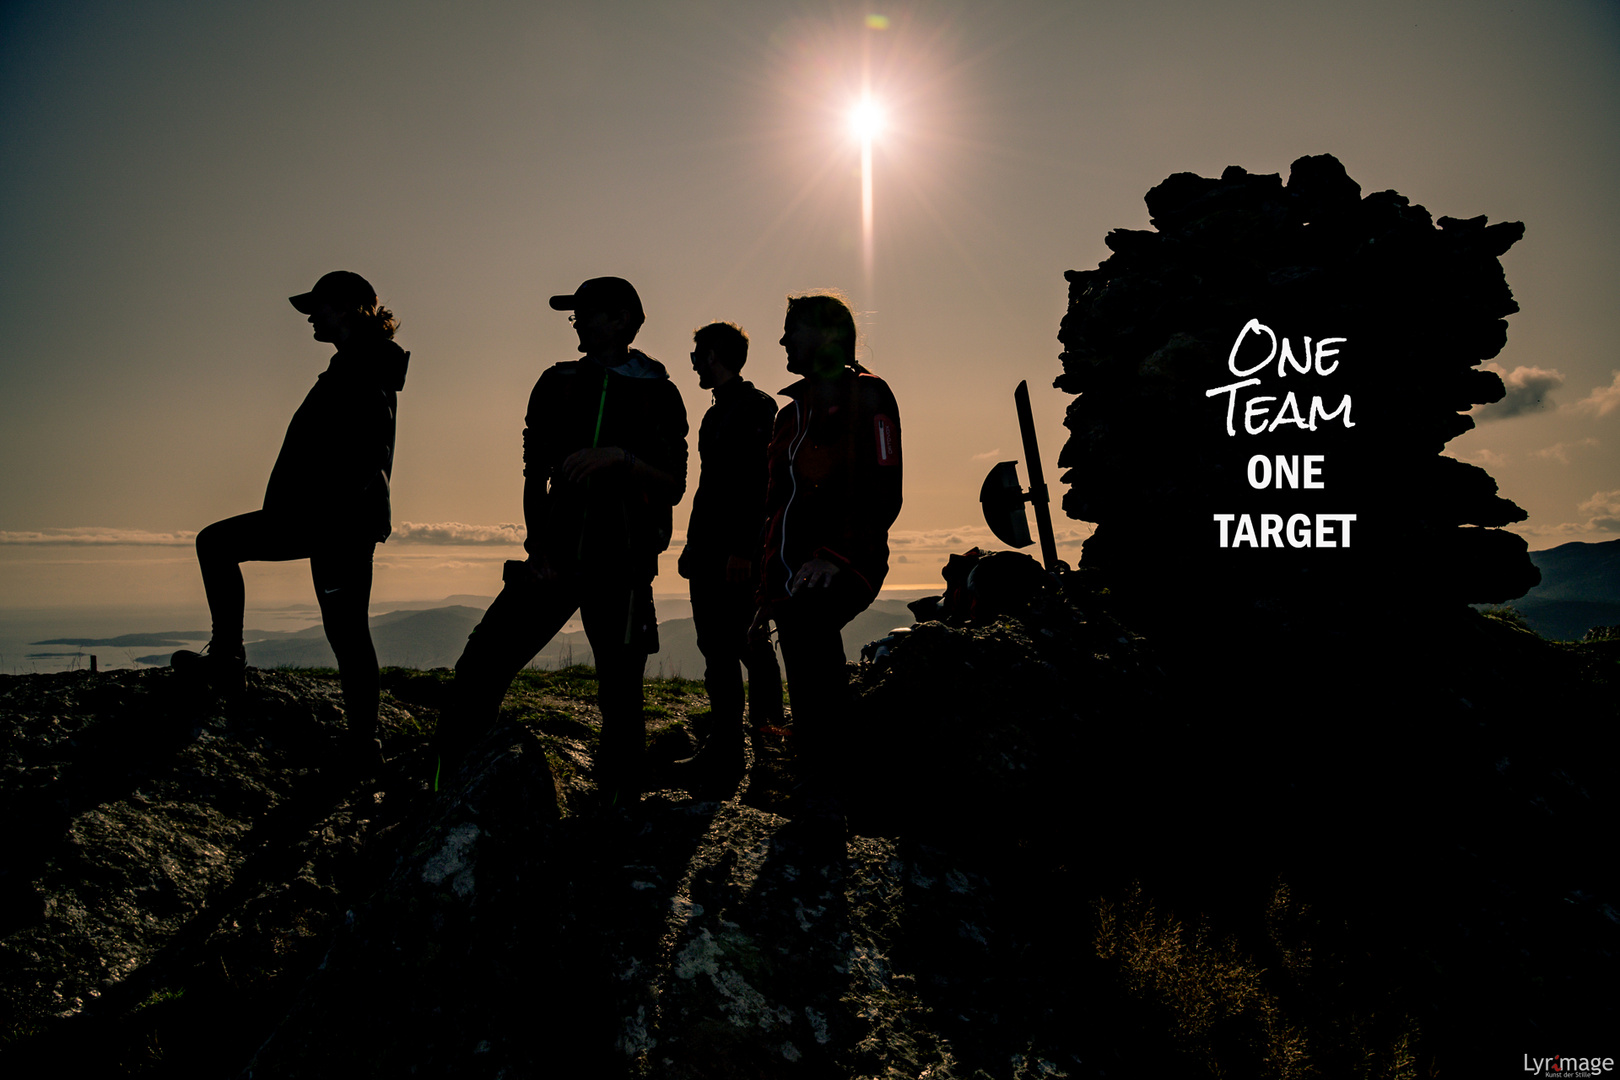 One Team One Target